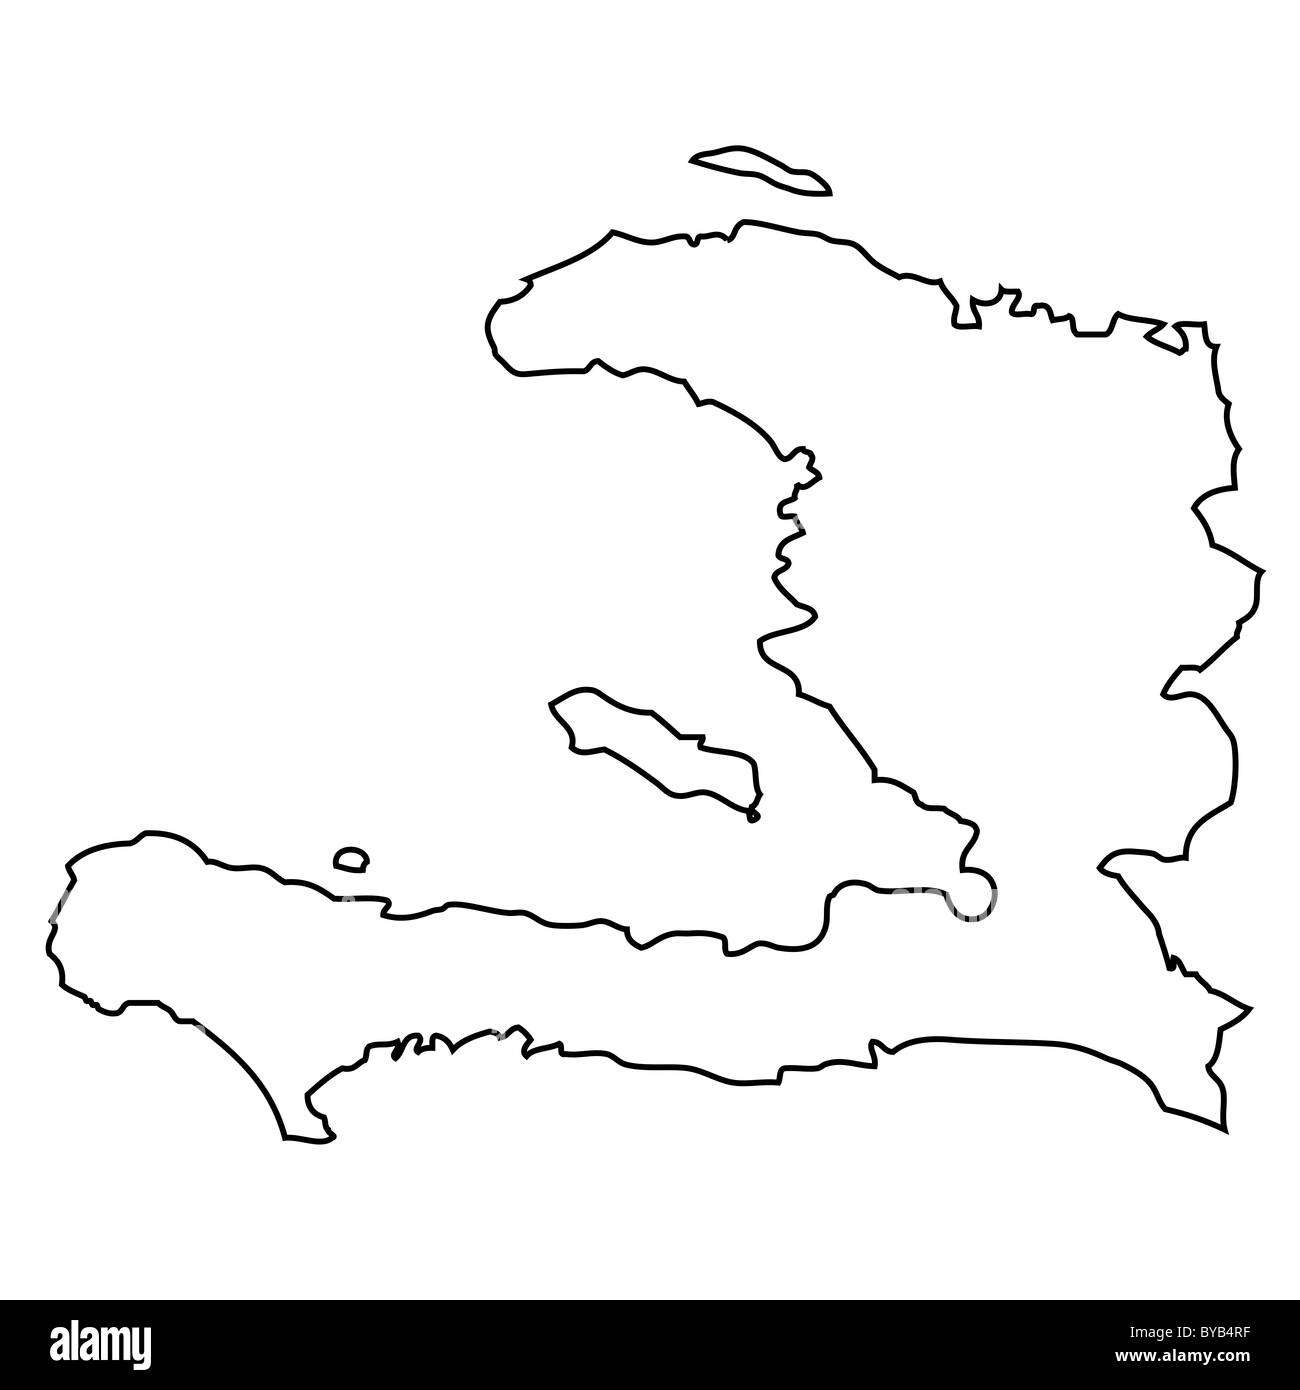 Haiti Map Outline Outline, map of Haiti Stock Photo: 34051347   Alamy